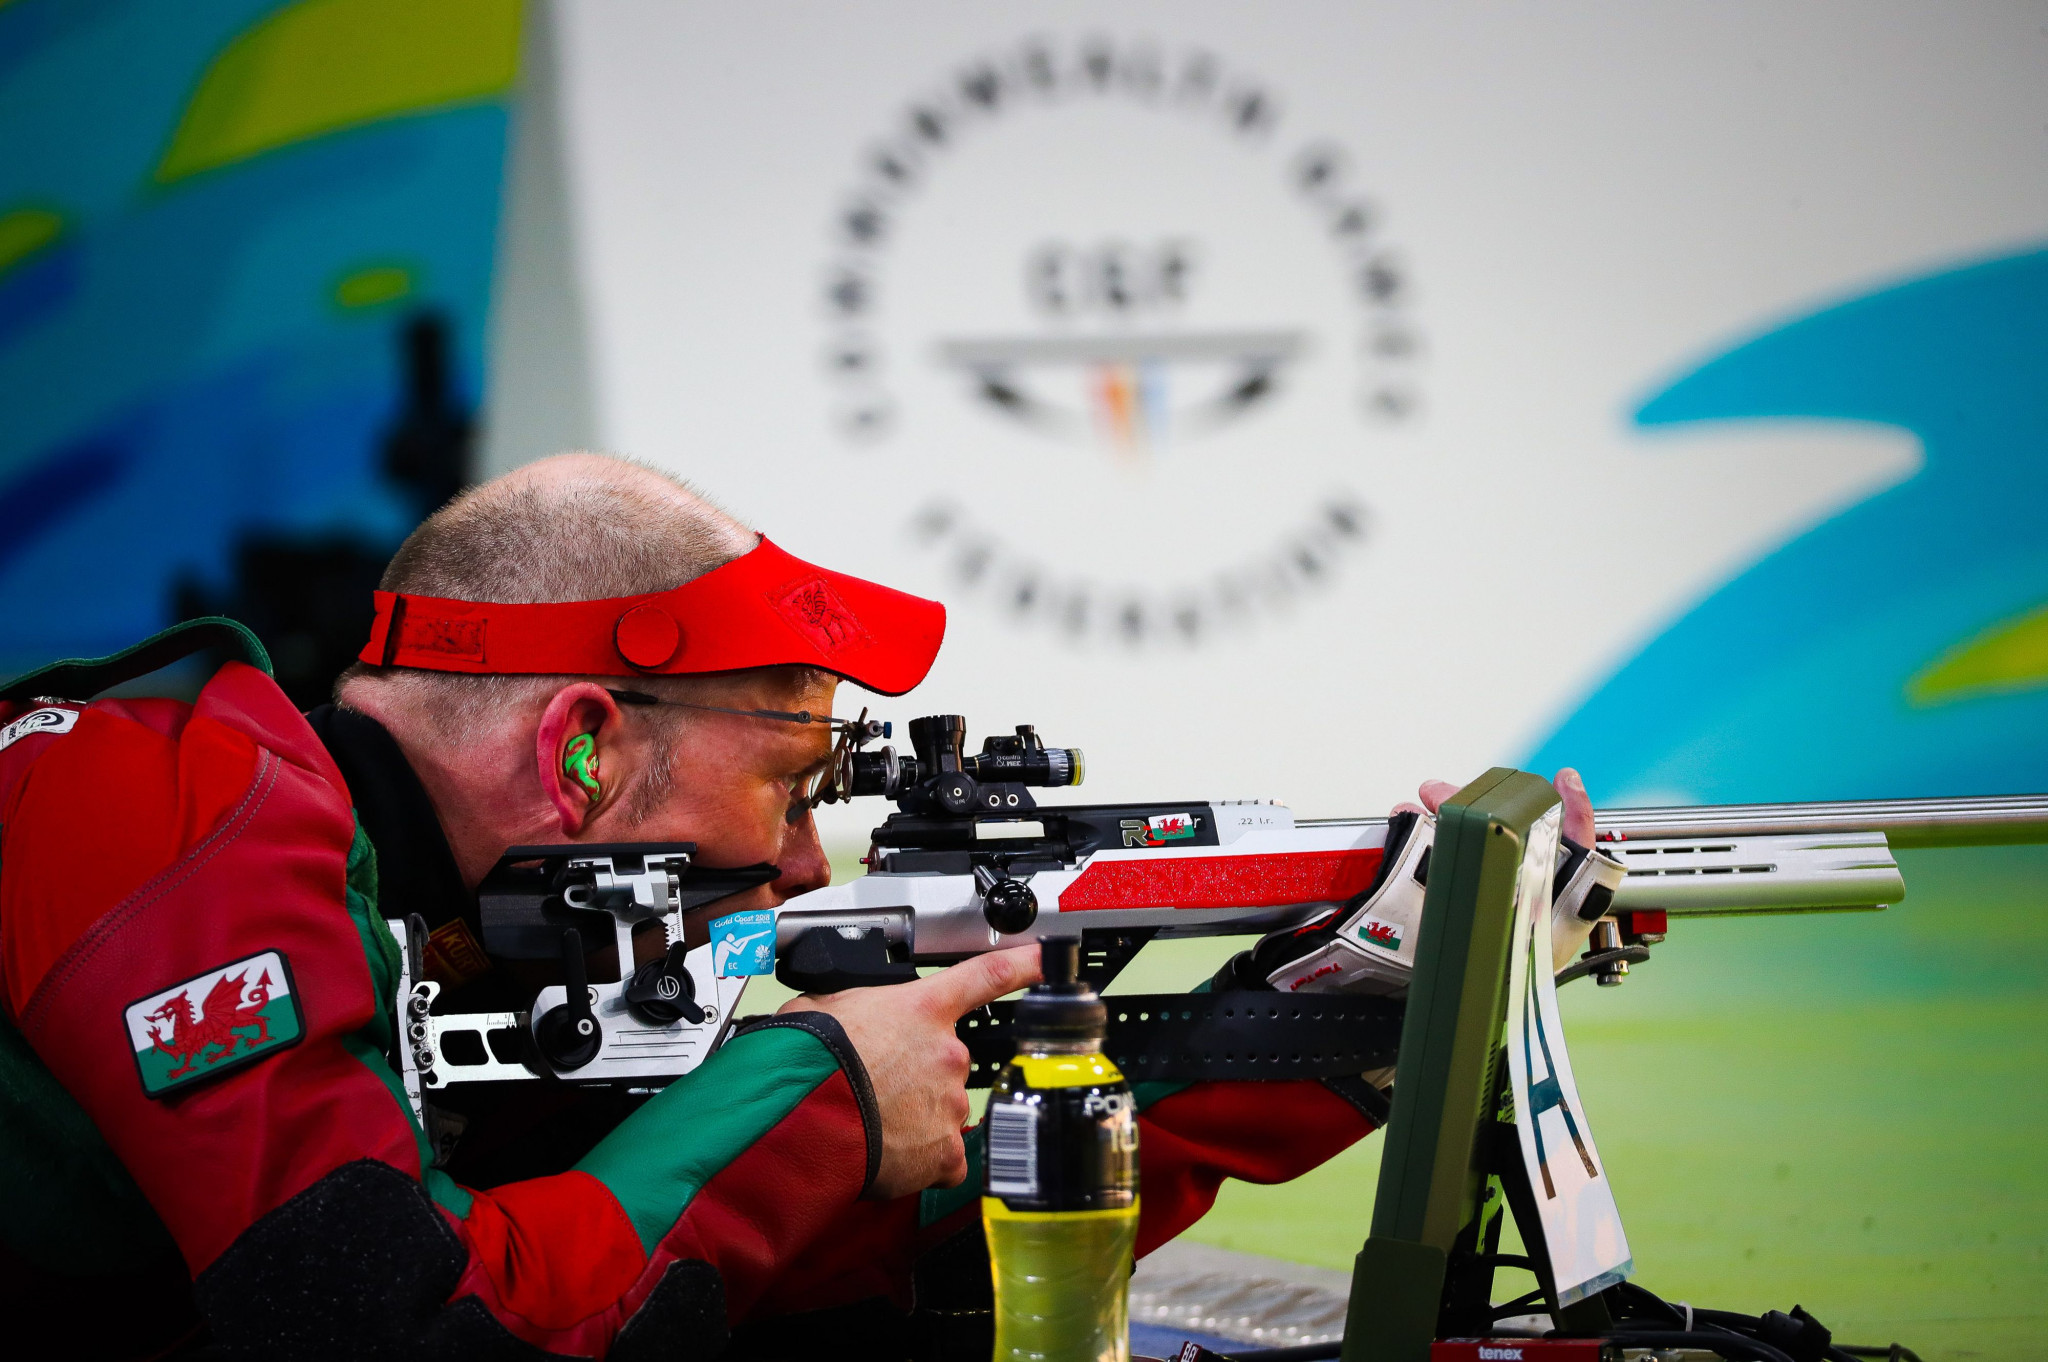 Birthday boy Phelps claims men's 50m rifle prone title with Commonwealth Games record